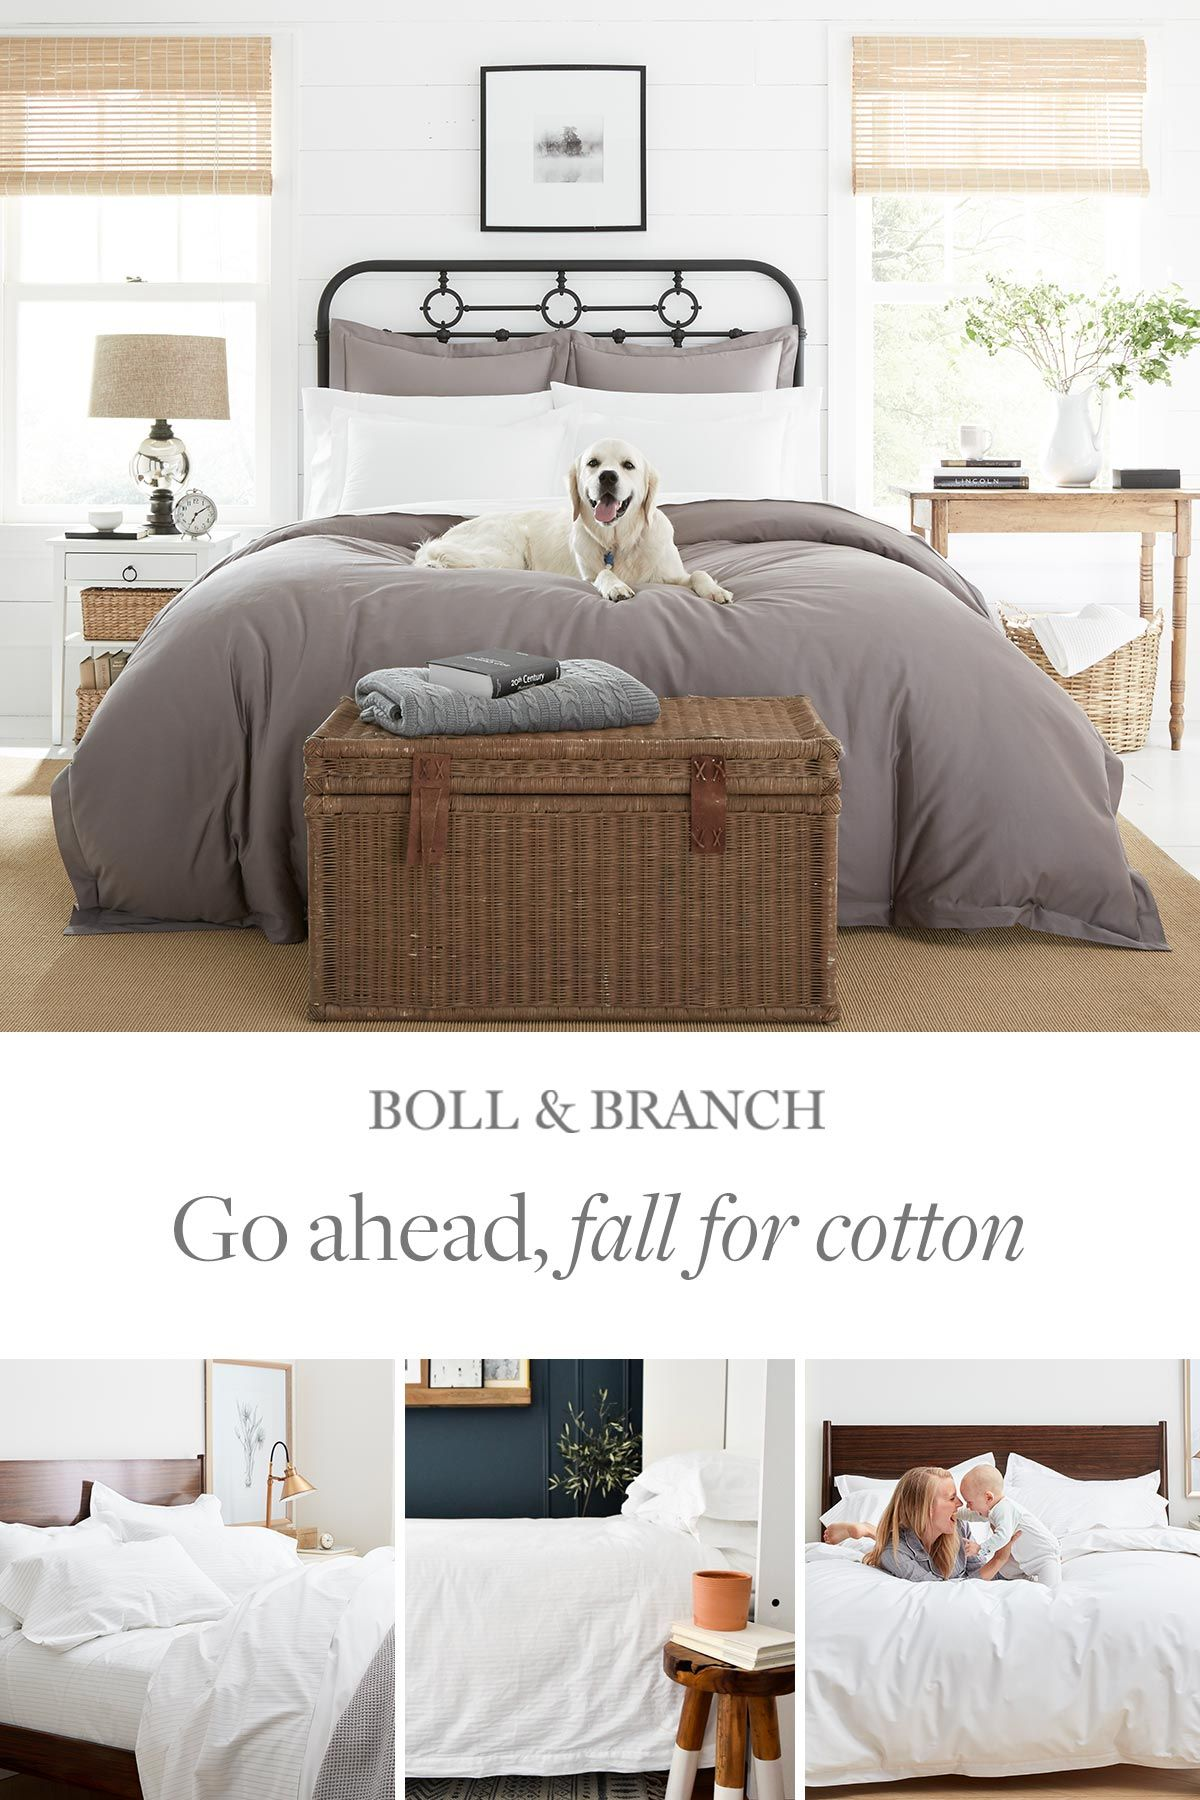 Fall bedding sets autumn sheets  comforters by boll branch also best farmhouse bedrooms images in master bedroom rh pinterest